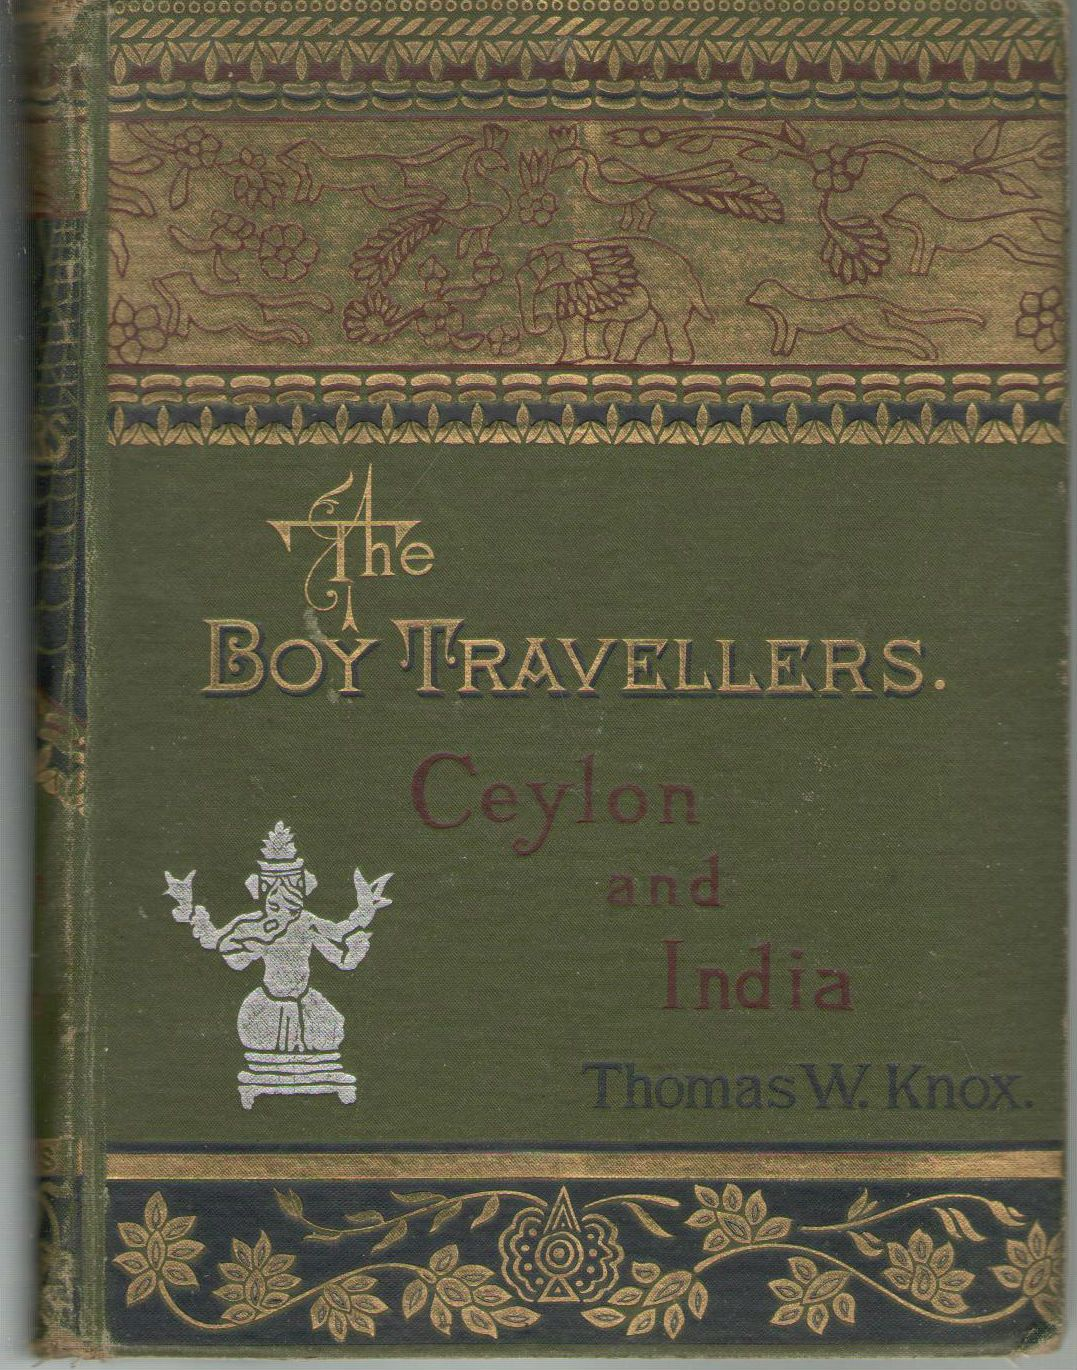 Boy Travellers, The: Ceylon and India